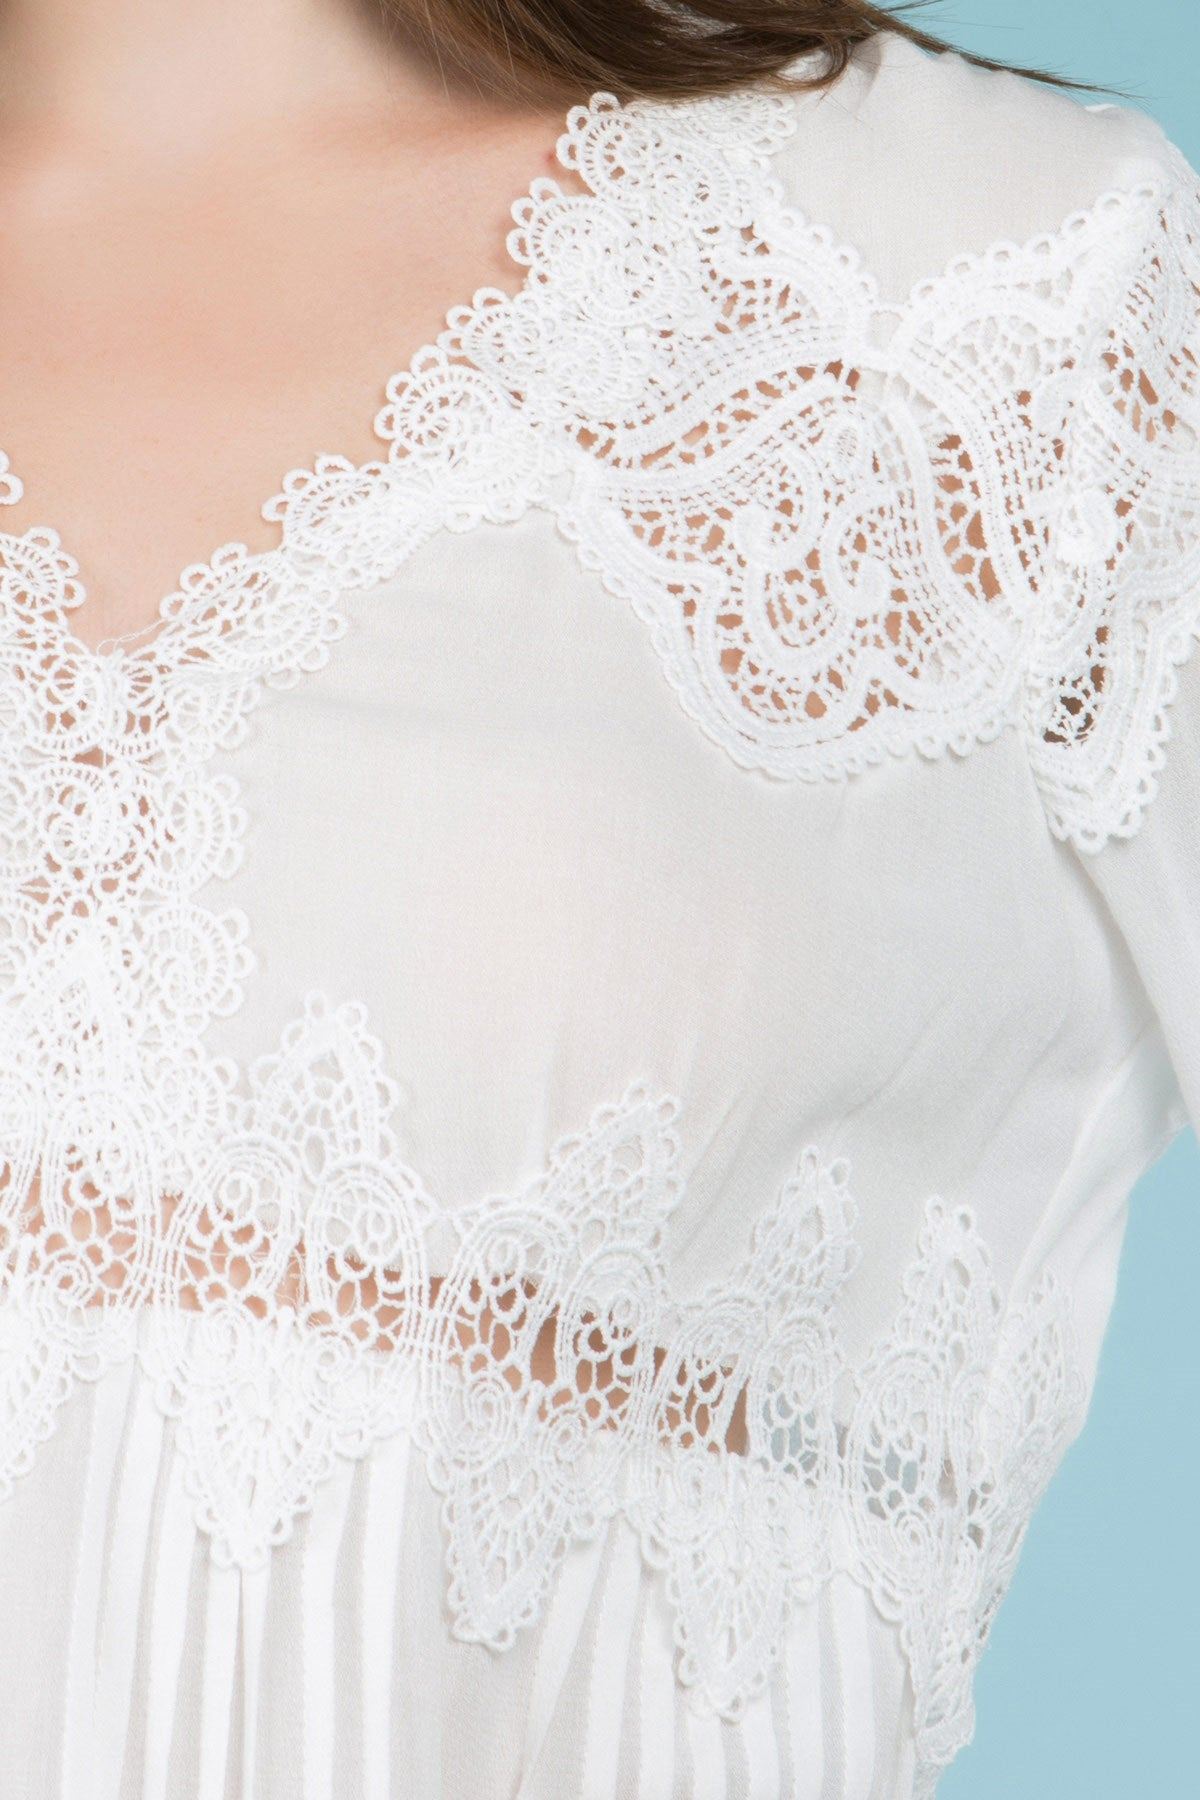 Detail view white empire waist lace trim tunic top